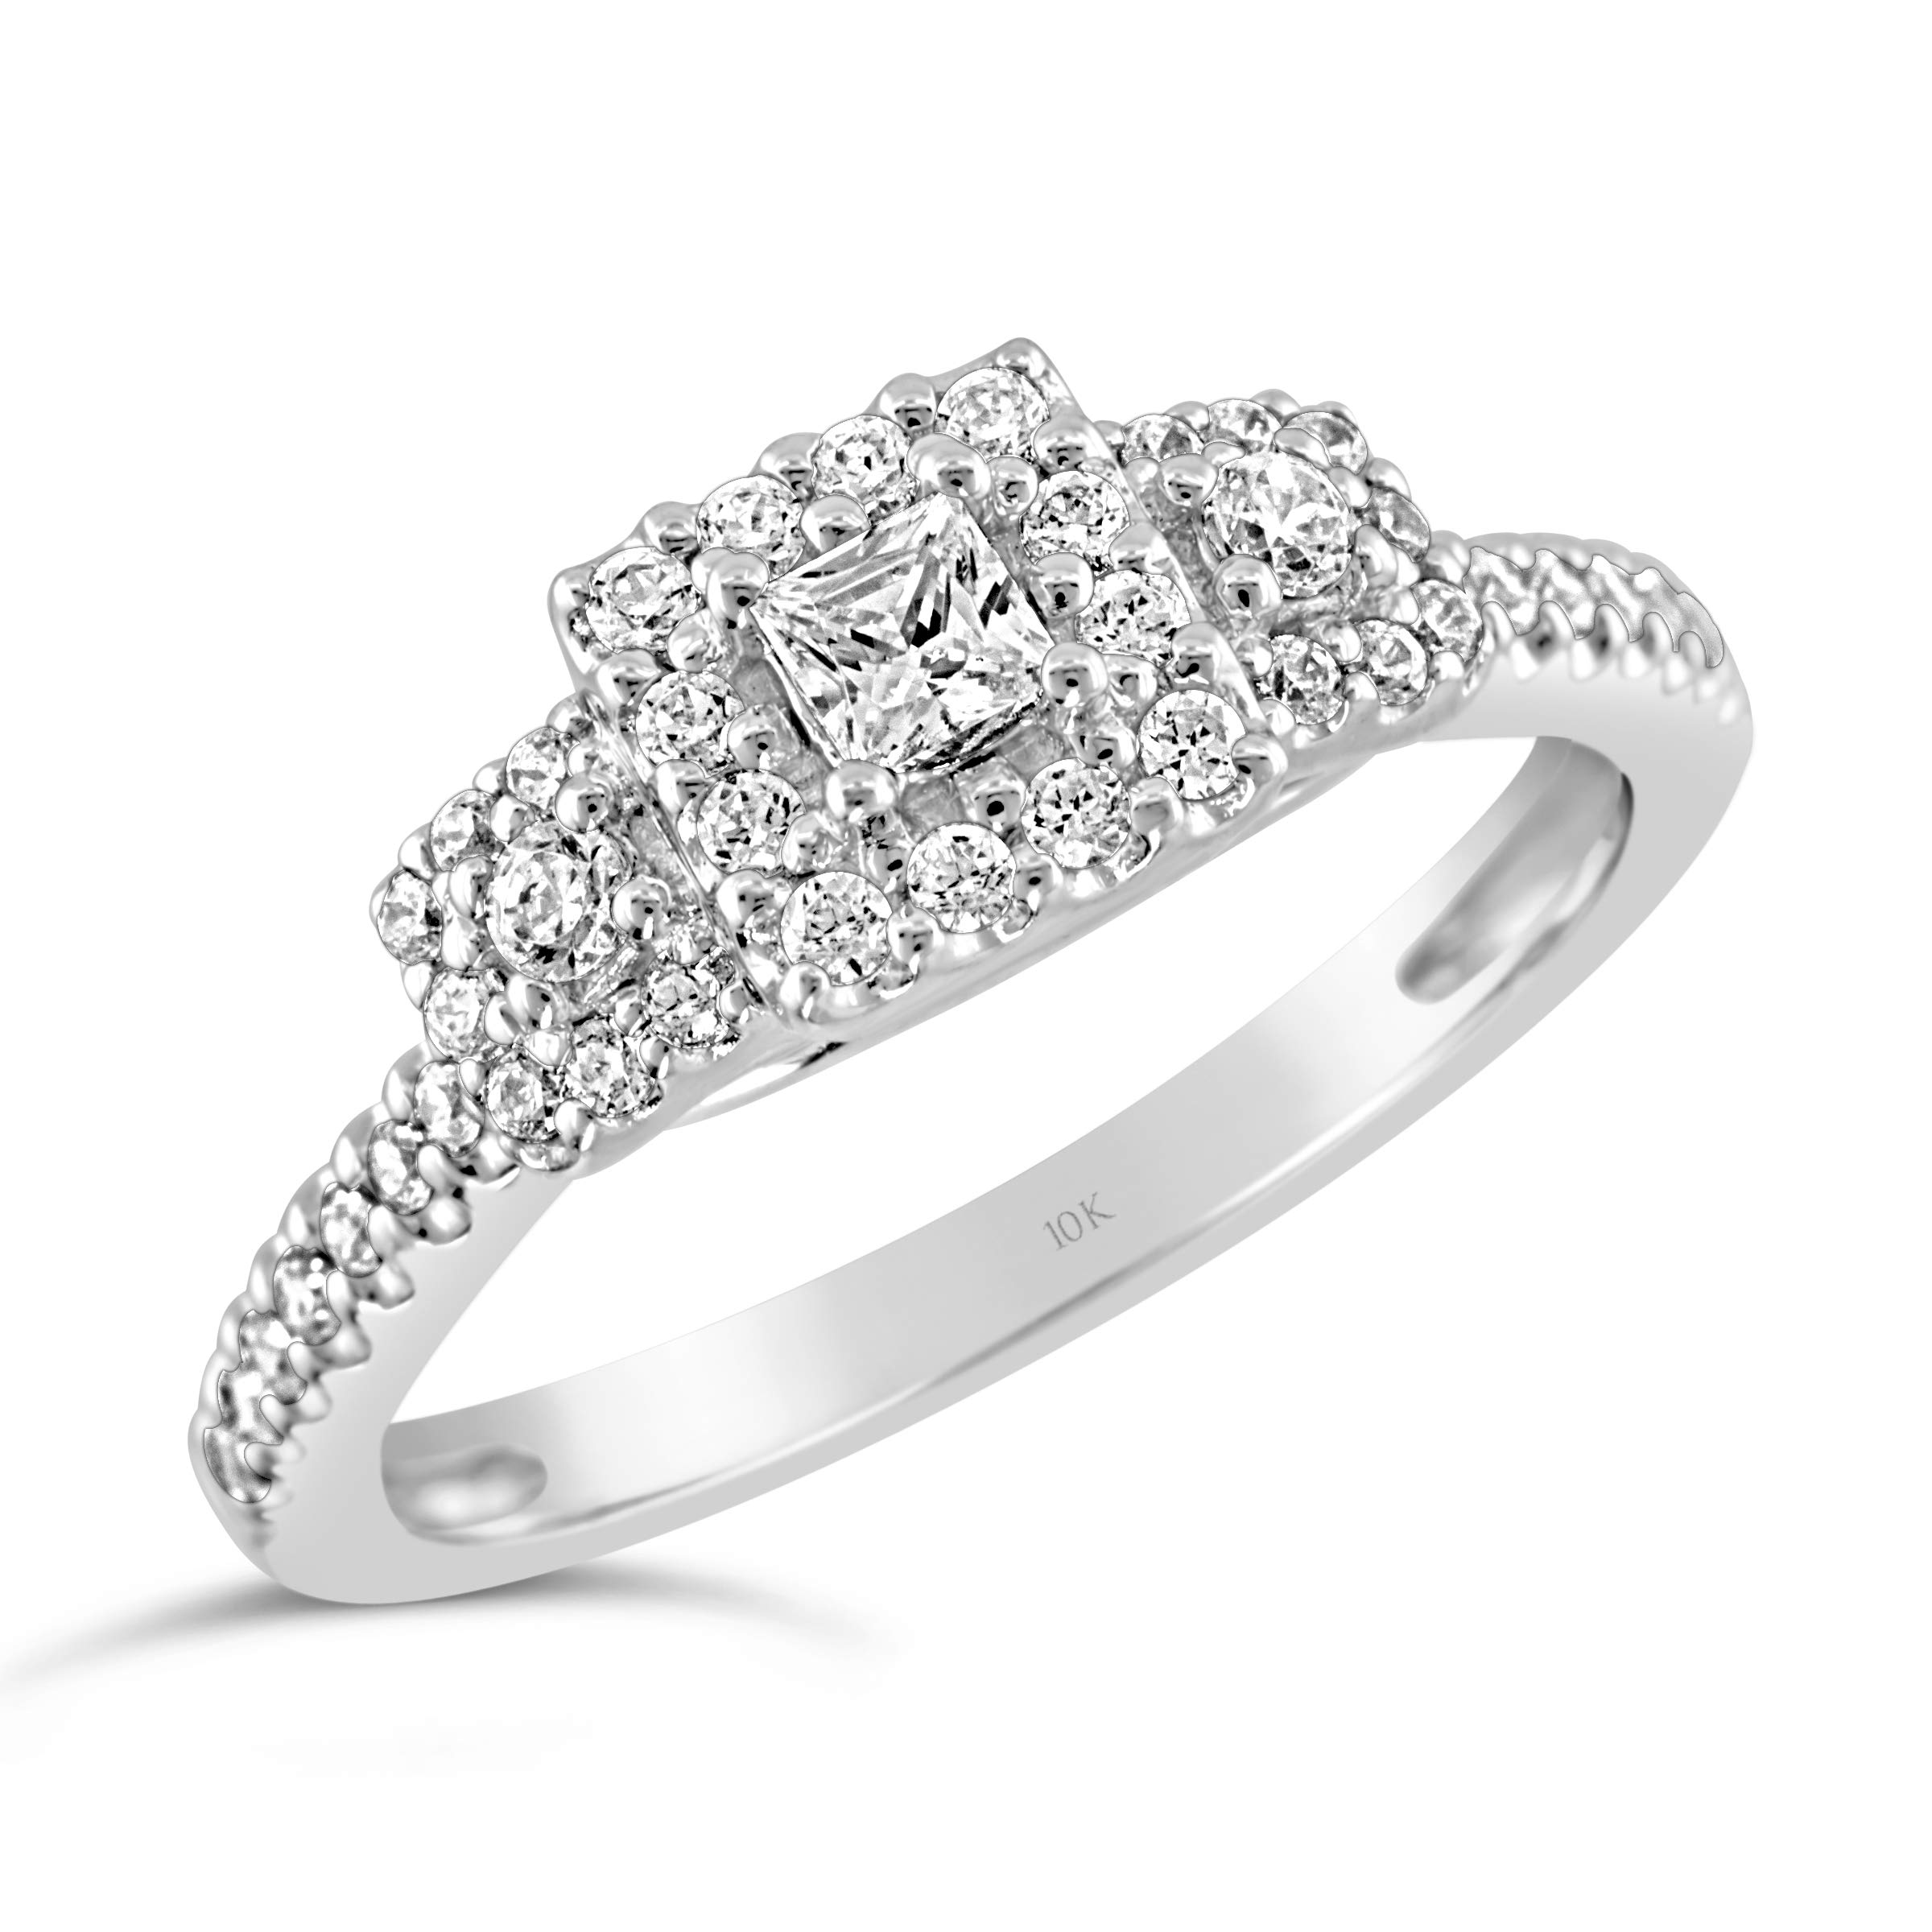 Brilliant Expressions 10K White Gold 3/8 Cttw Conflict Free Diamond Square Halo Three-Stone Engagement Ring (I-J Color, I2-I3 Clarity), Size 8